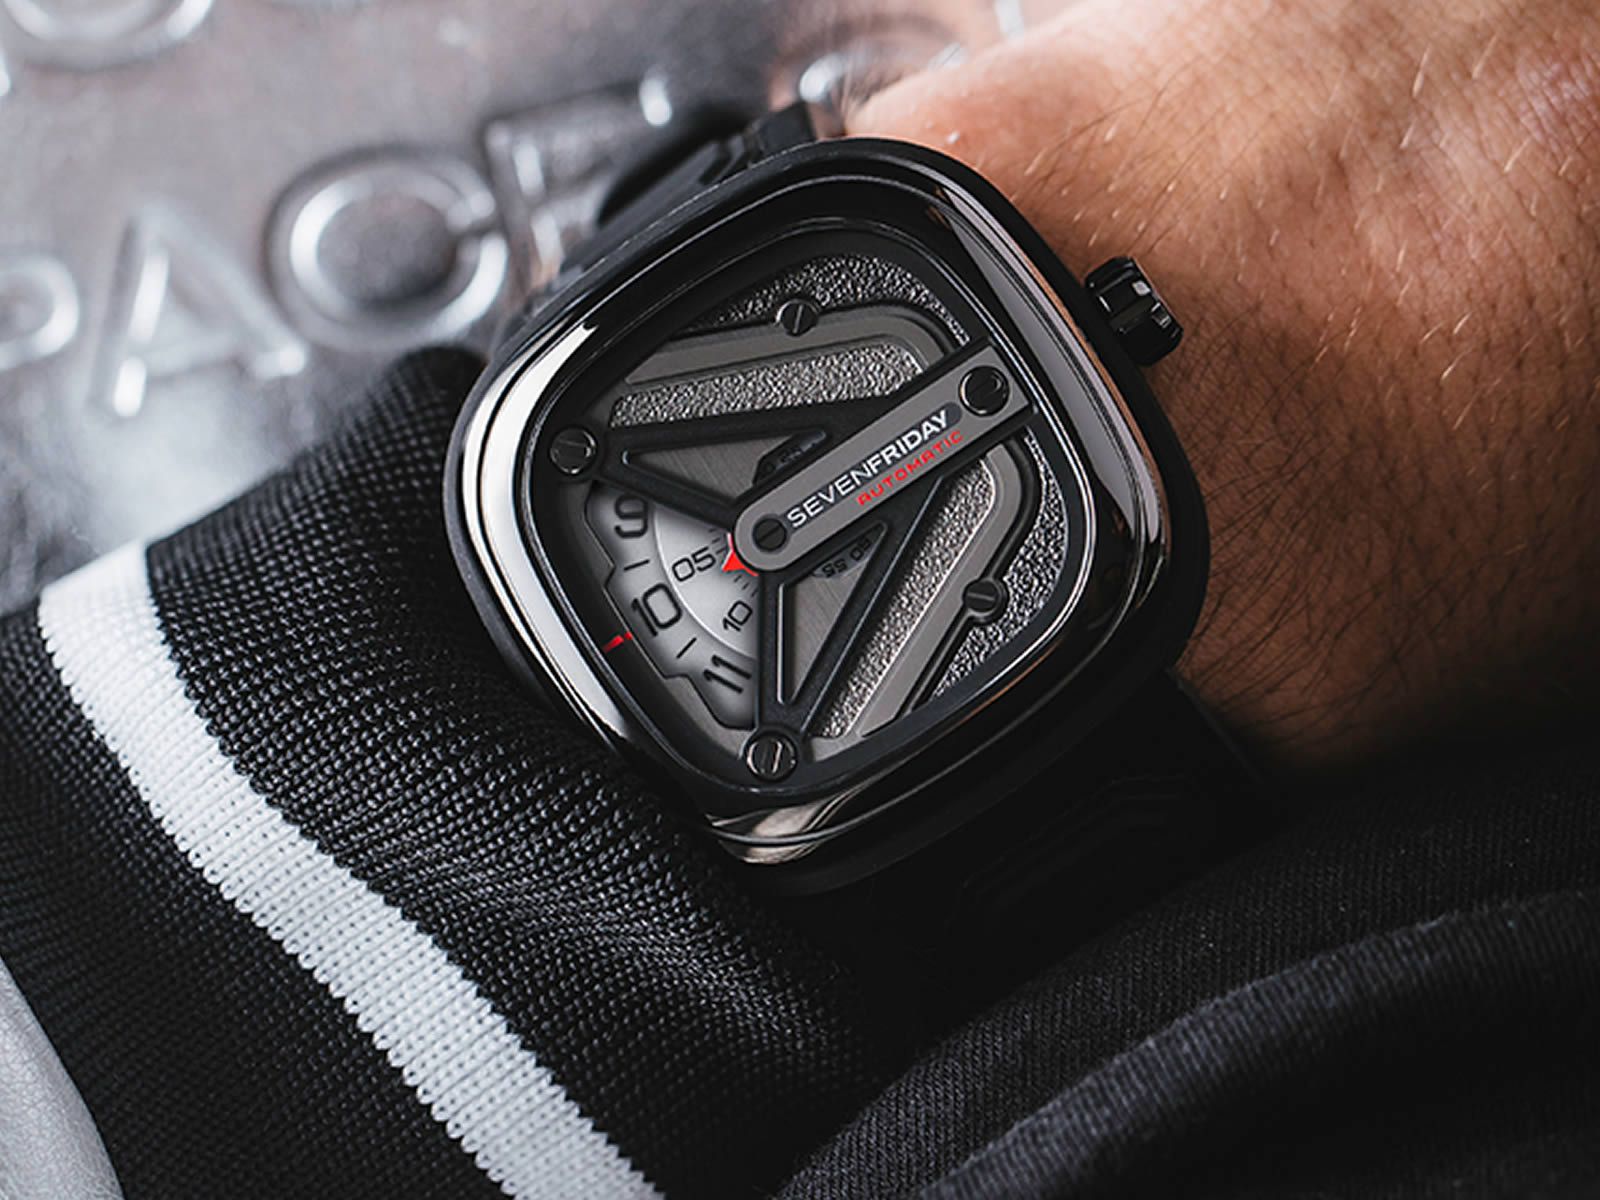 sevenfriday-m3-01-spaceship-edition-5-.jpg